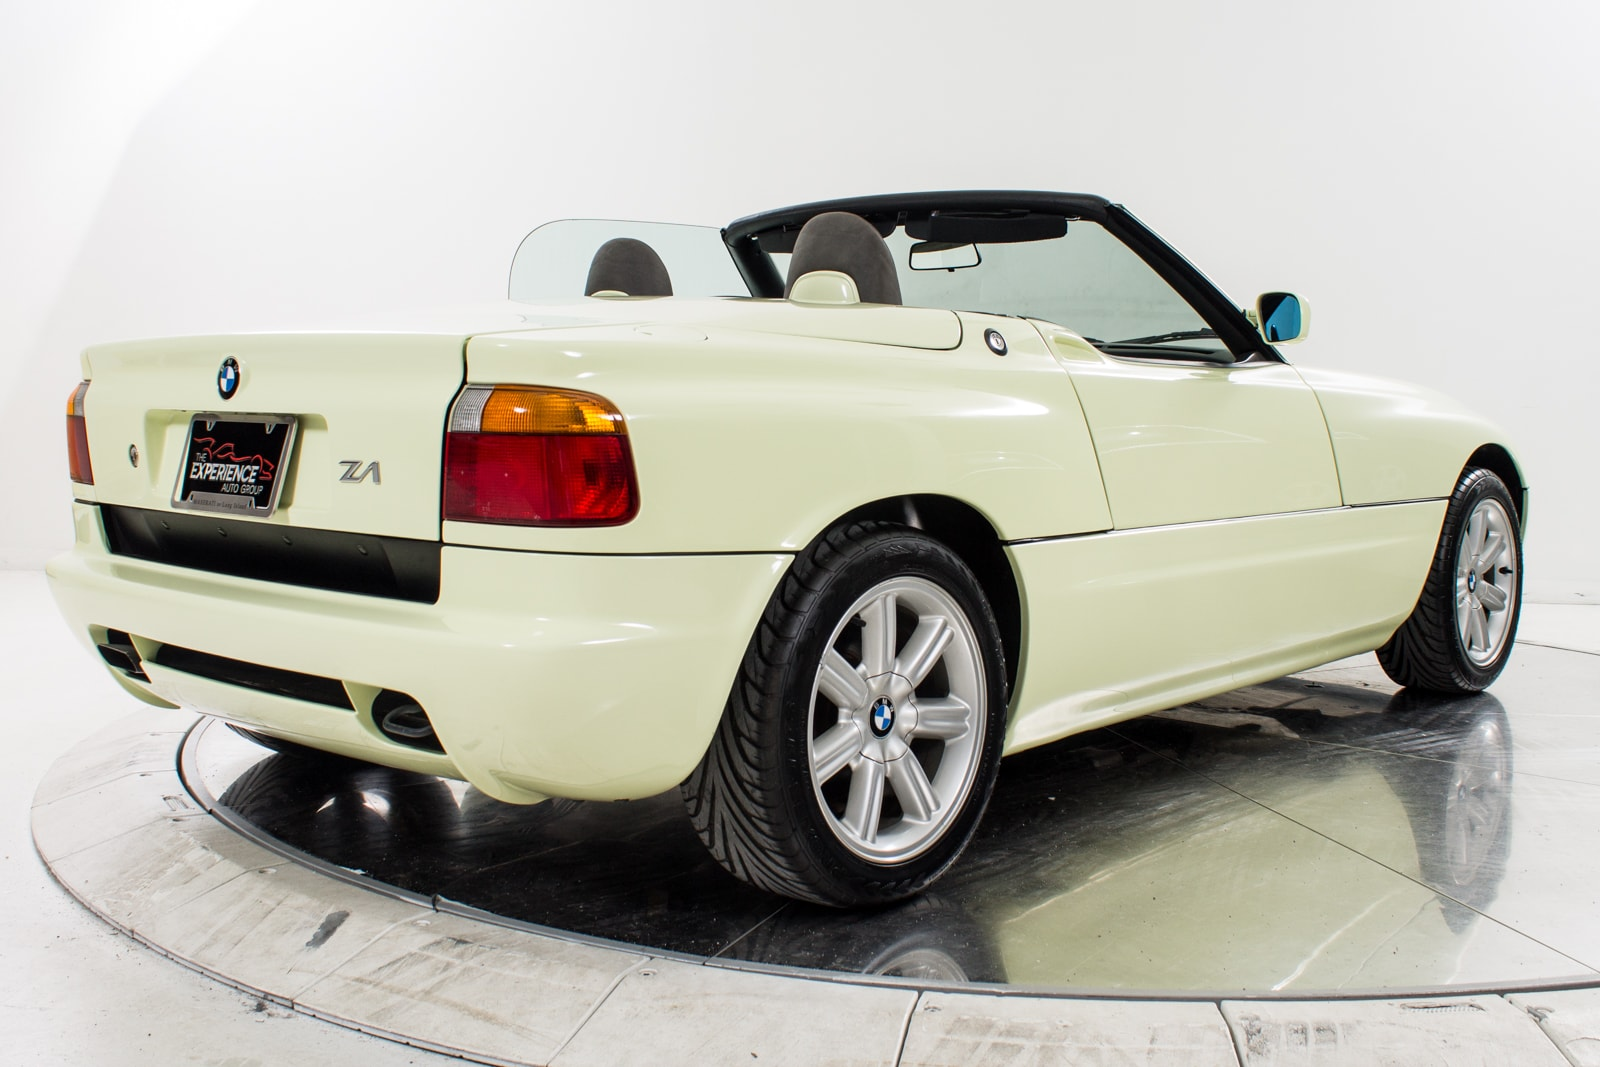 used 1990 bmw z1 for sale fort lauderdale fl vin wbaba91000al05367. Black Bedroom Furniture Sets. Home Design Ideas